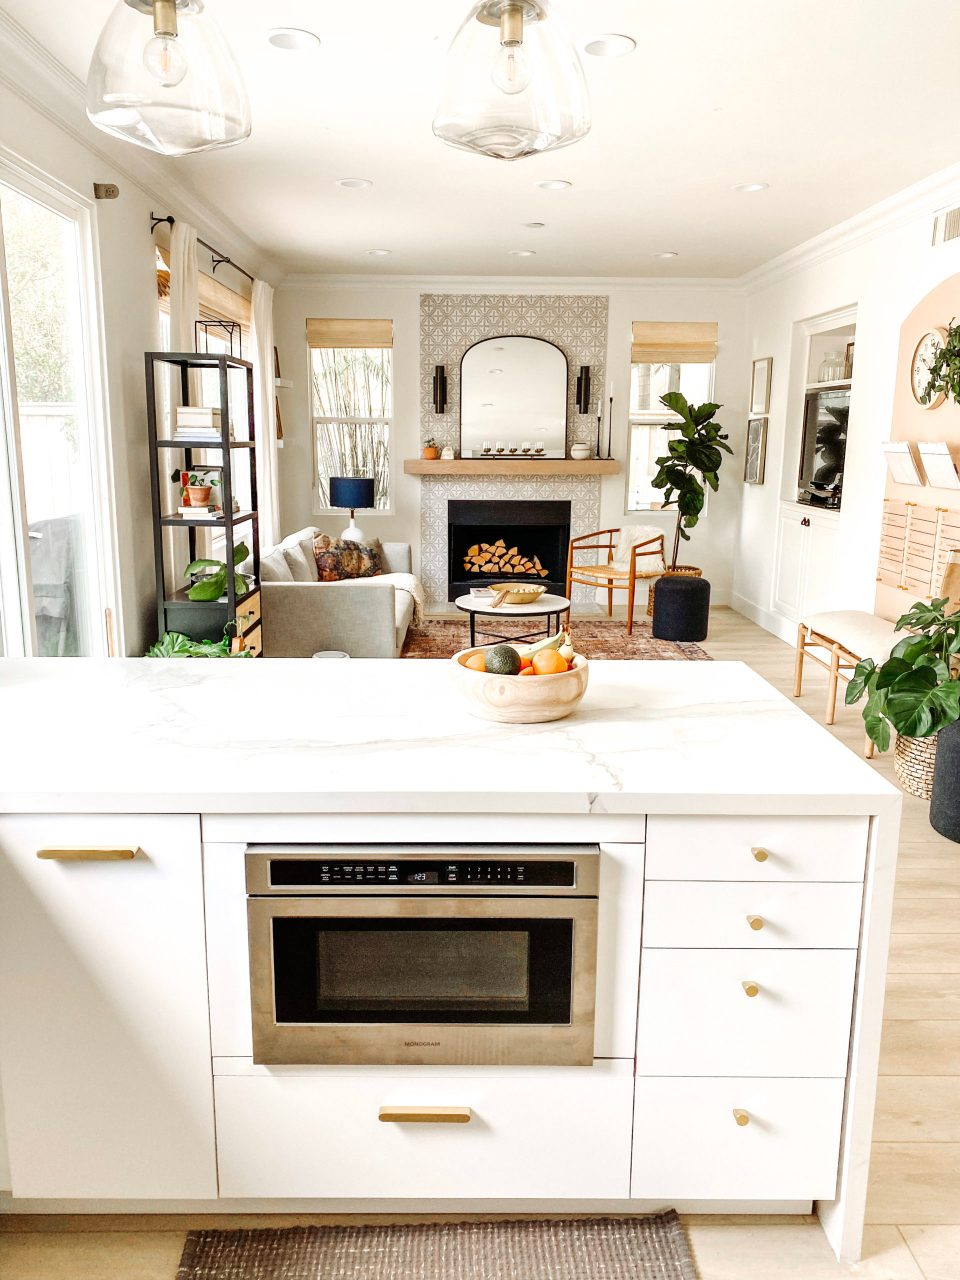 The new kitchen peninsula features exclusively cabinet drawers—even the microwave is a drawer!